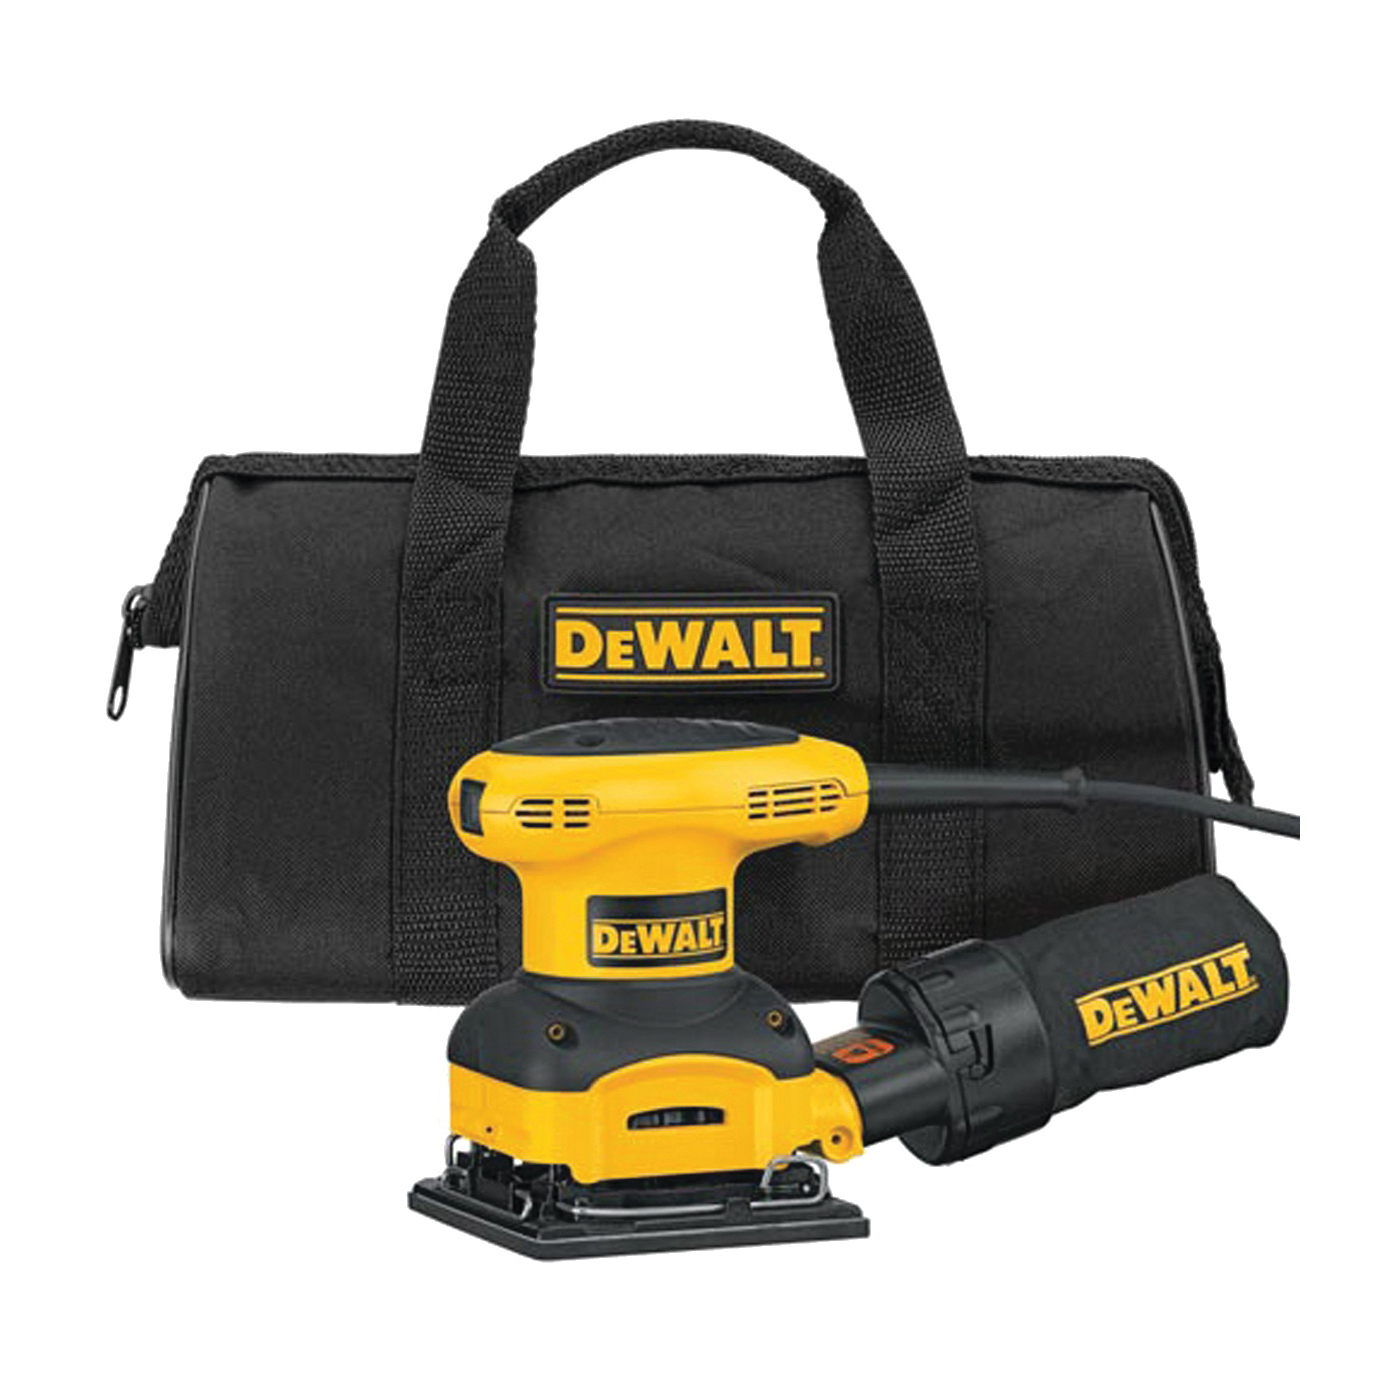 Picture of DeWALT DWE6411K/D26441K Sander Kit, 120 V, 2.3 A, 4-1/8 x 4-1/2 in Pad, 14000 opm No Load